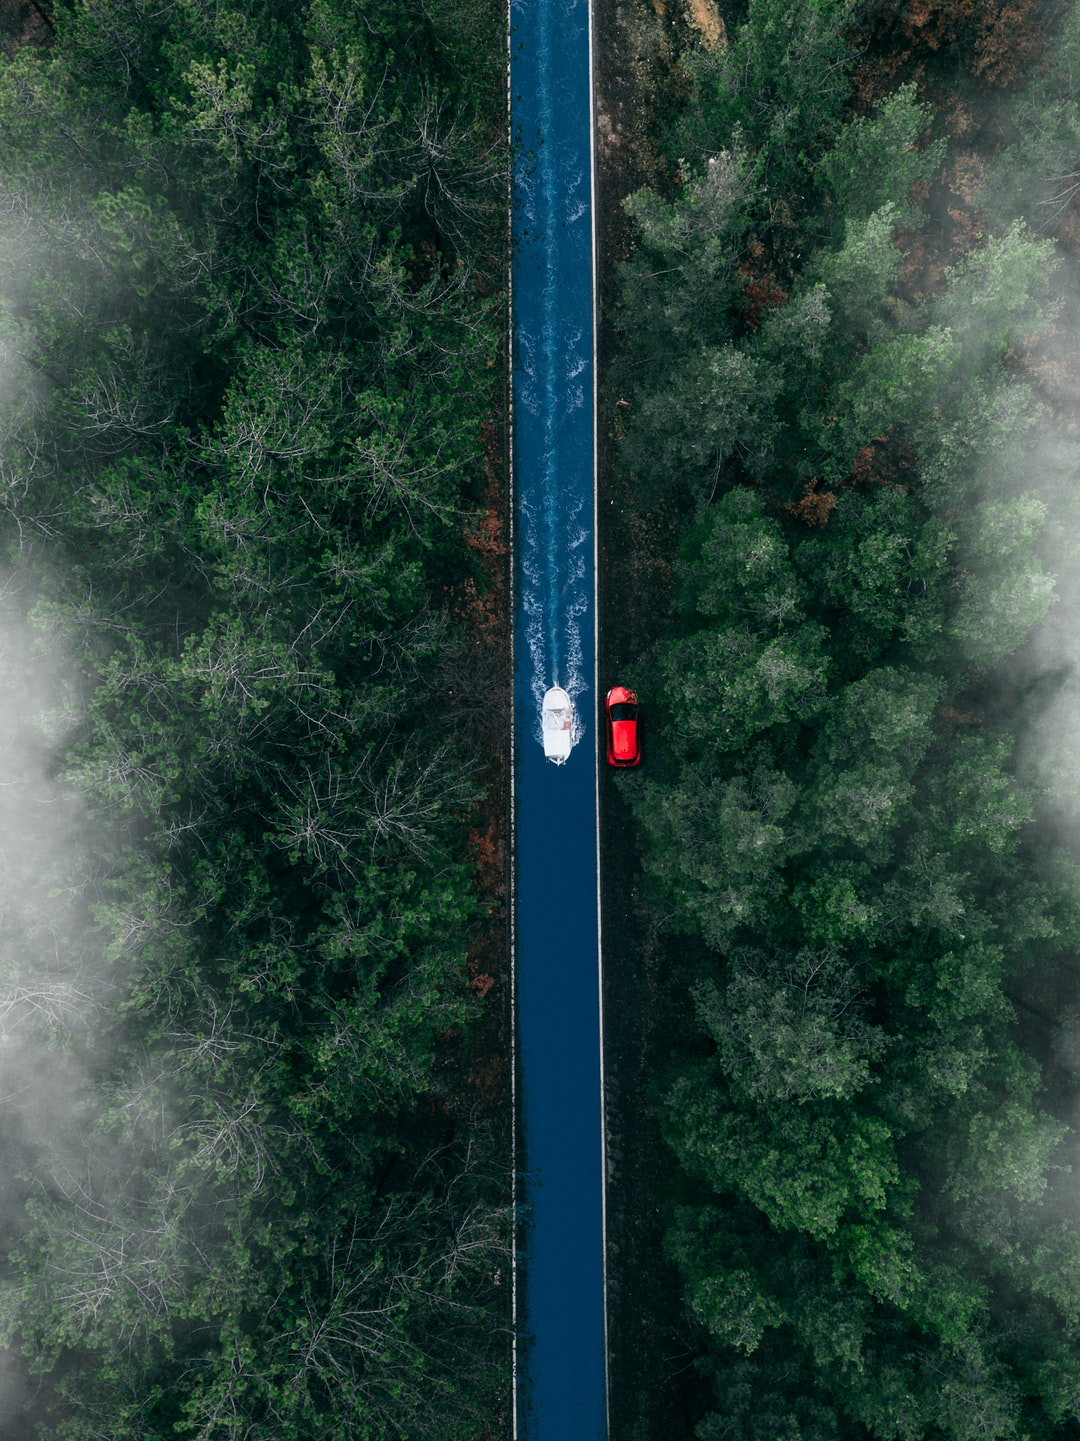 Don't you just hate it when you are about to take a shot of your red car in the middle of a forest road and a boat comes out of nowhere.